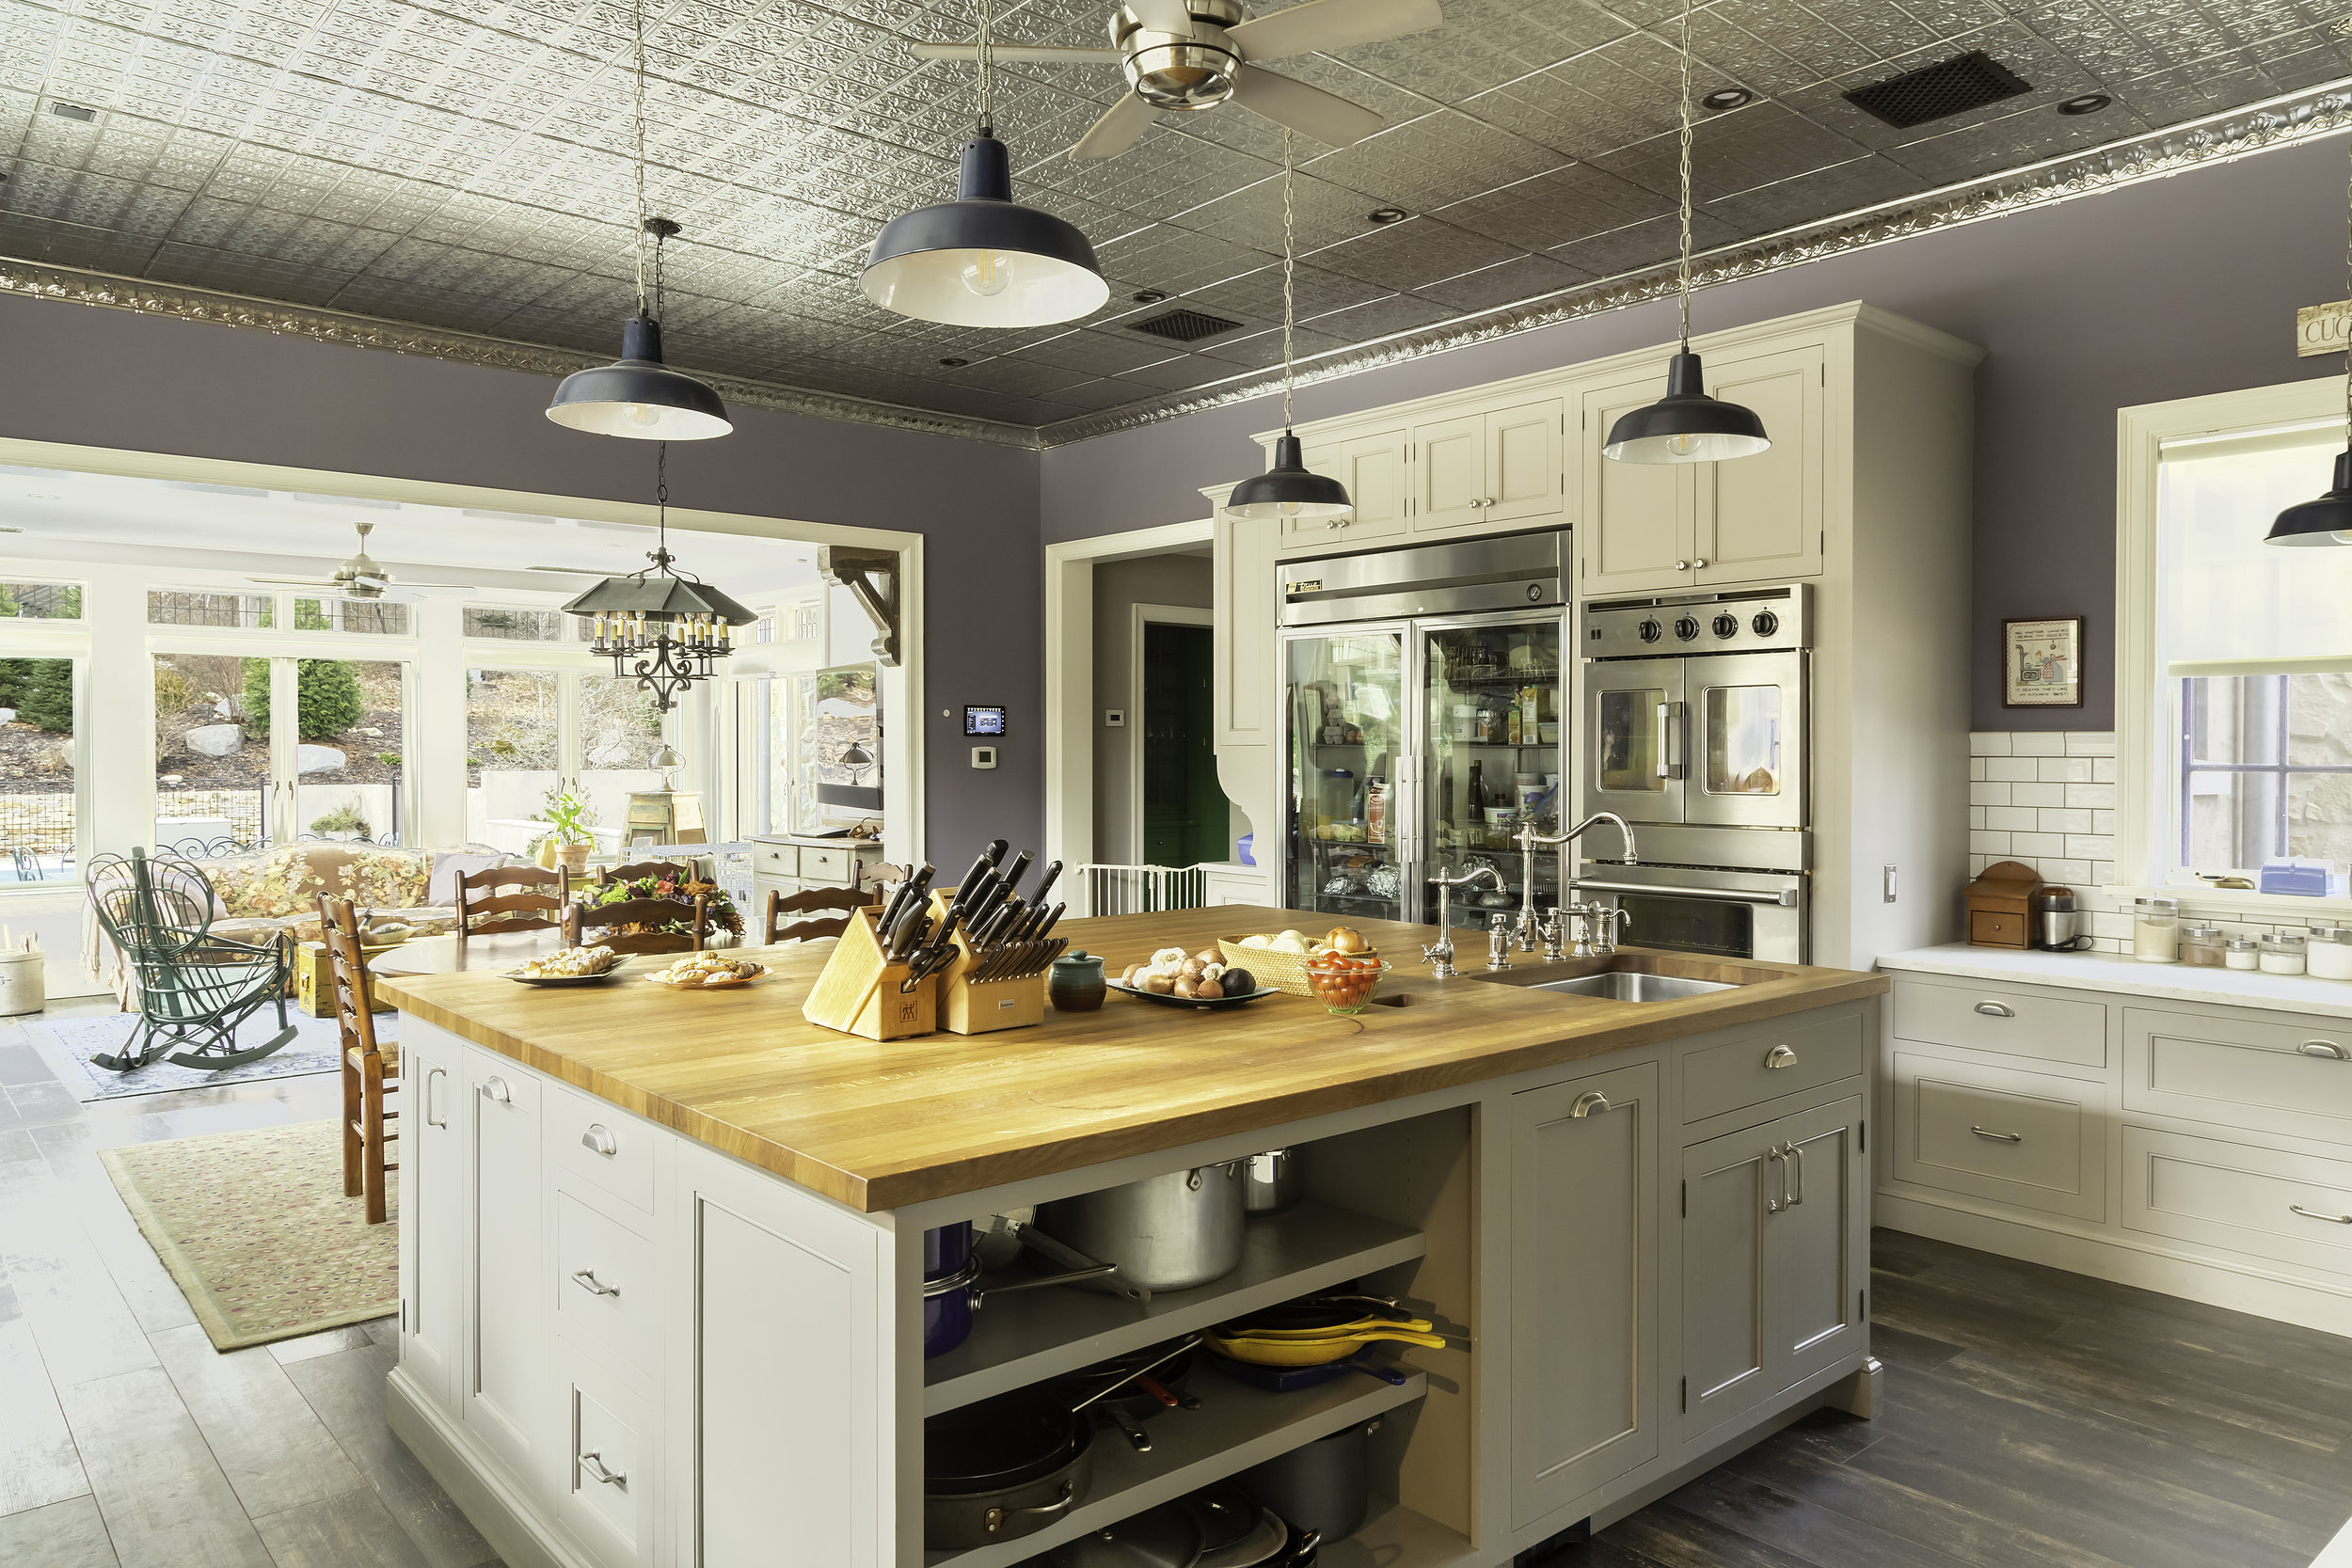 Modern country kitchen with open shelves